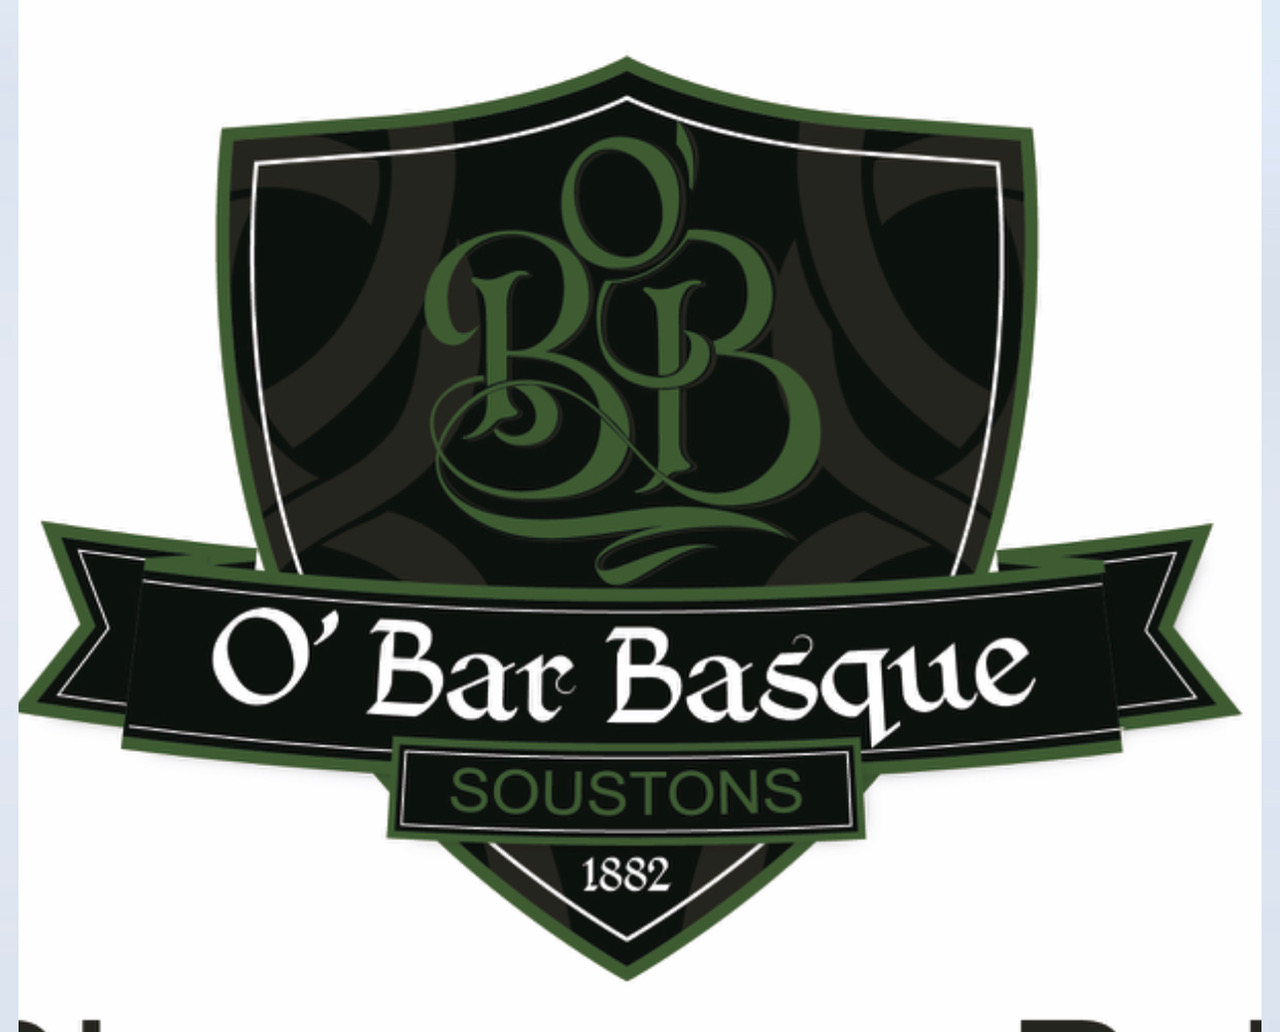 Bar basque